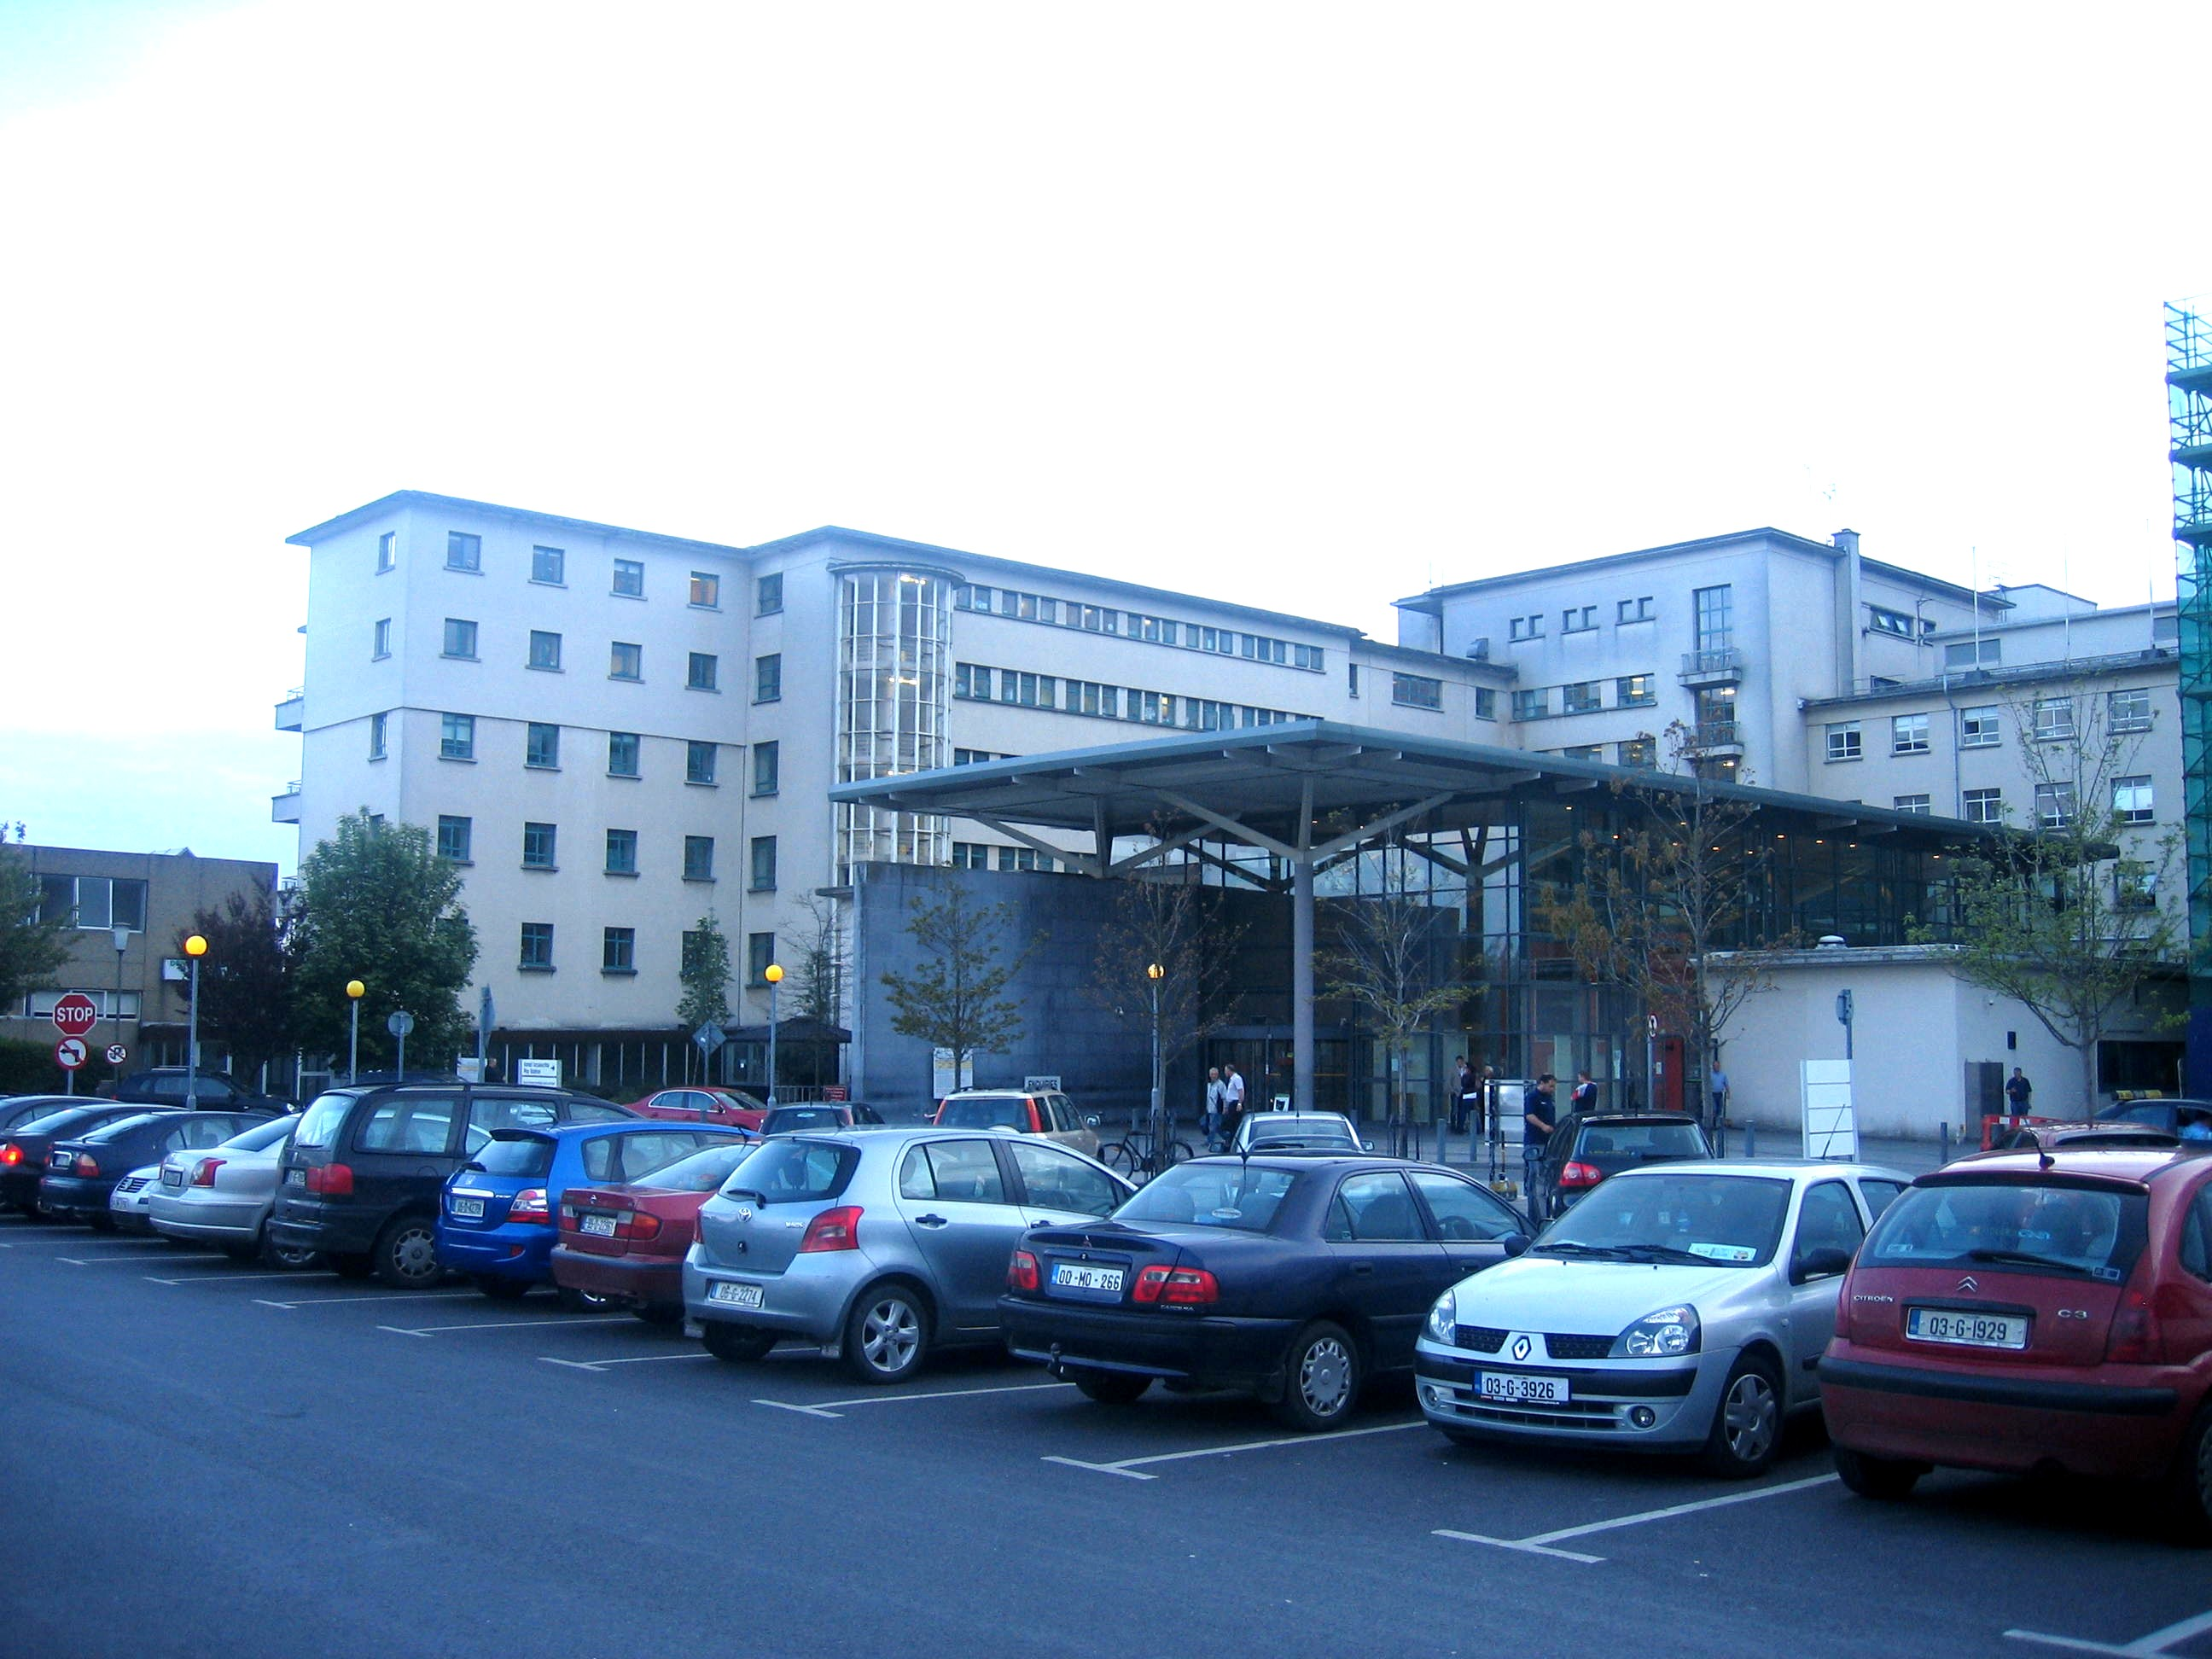 UHG is Ireland's most overcrowded hospital again today